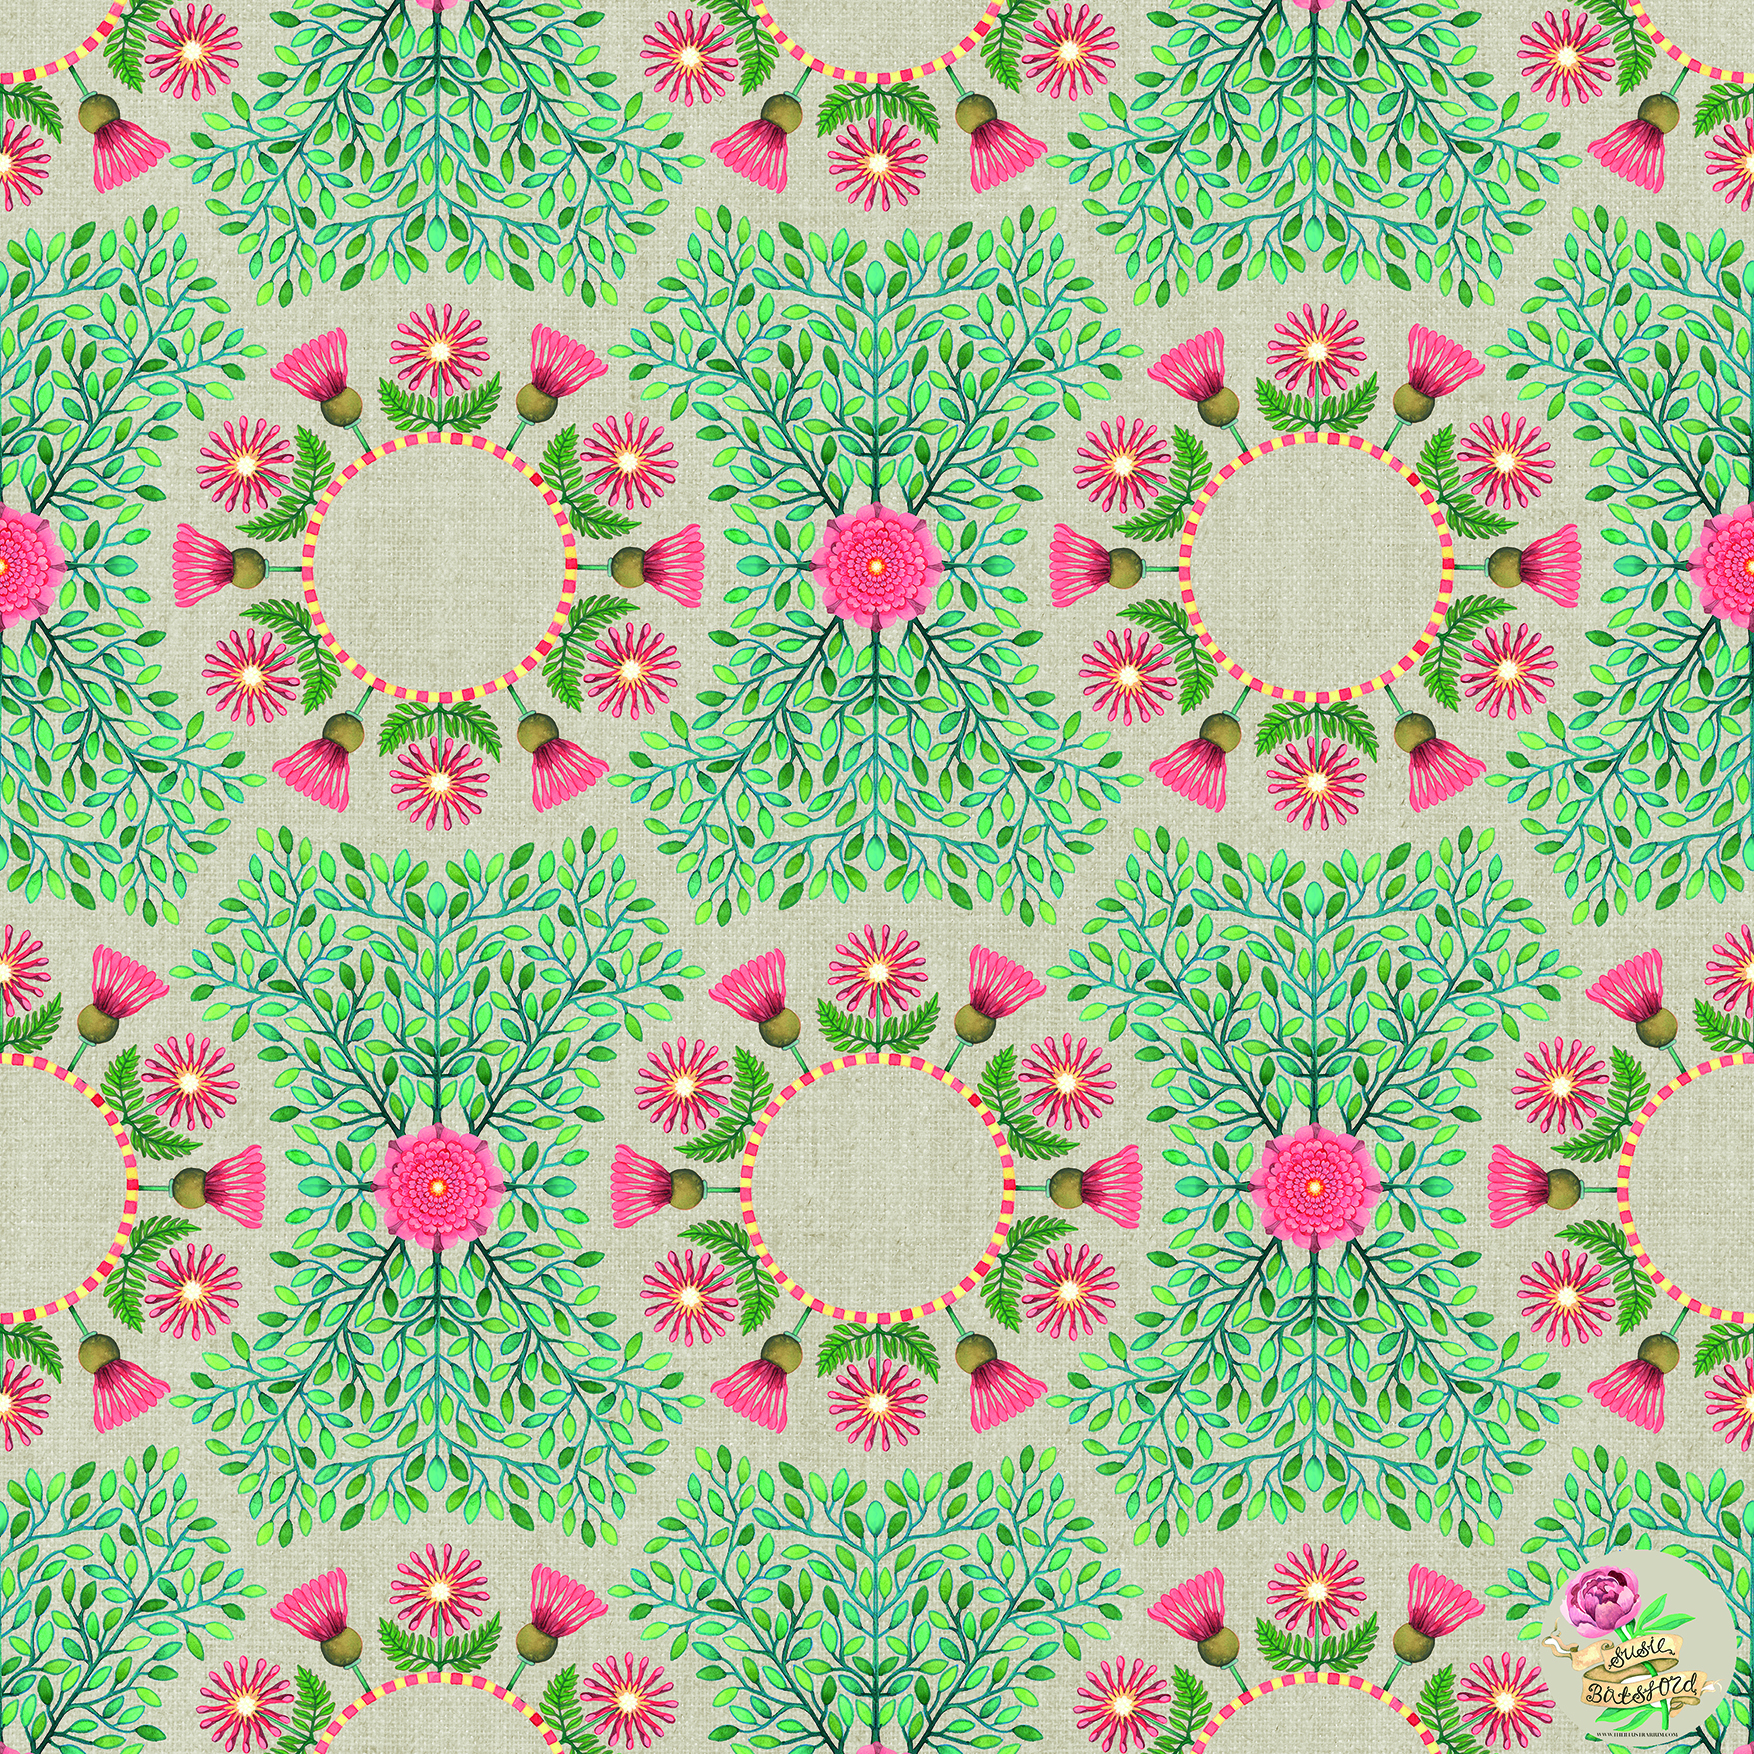 Hand Painted Daisy Design Pattern by Susie Batsford